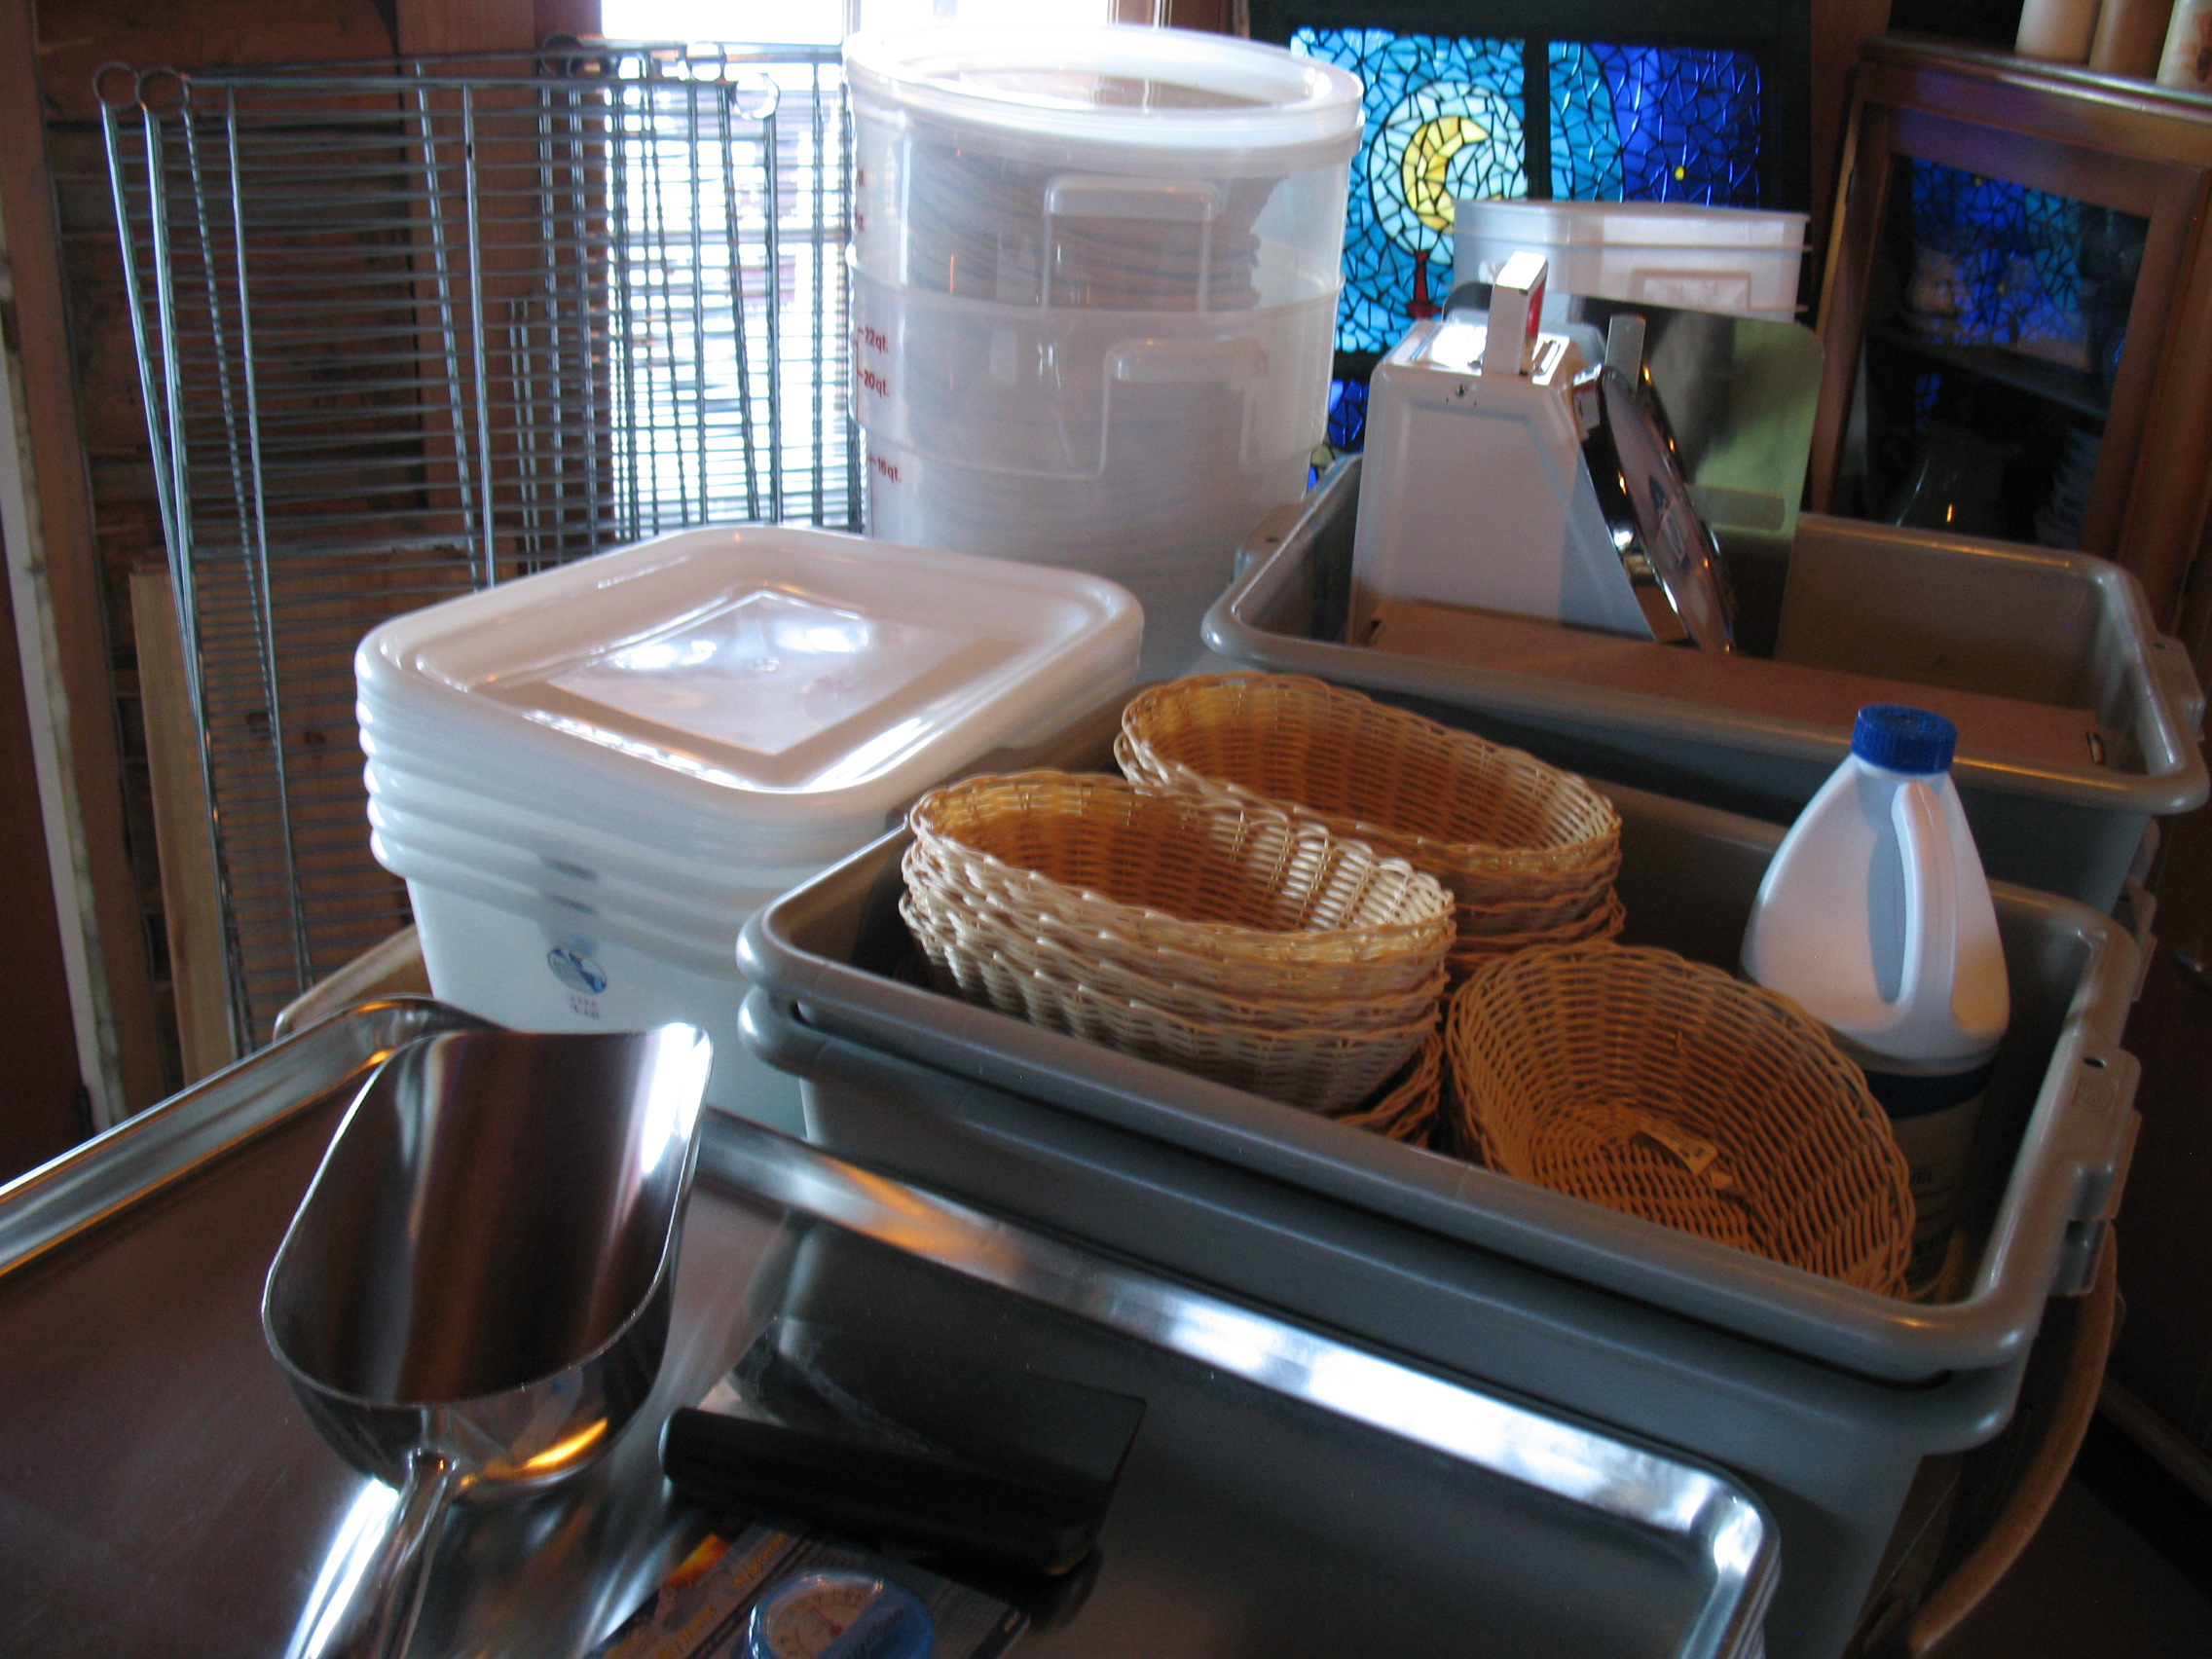 Bakery goodies: proofing baskets and racks, tubs with lids for doughs and starters, thermometers, scoops, cooling racks, bus pans, scales, etc!